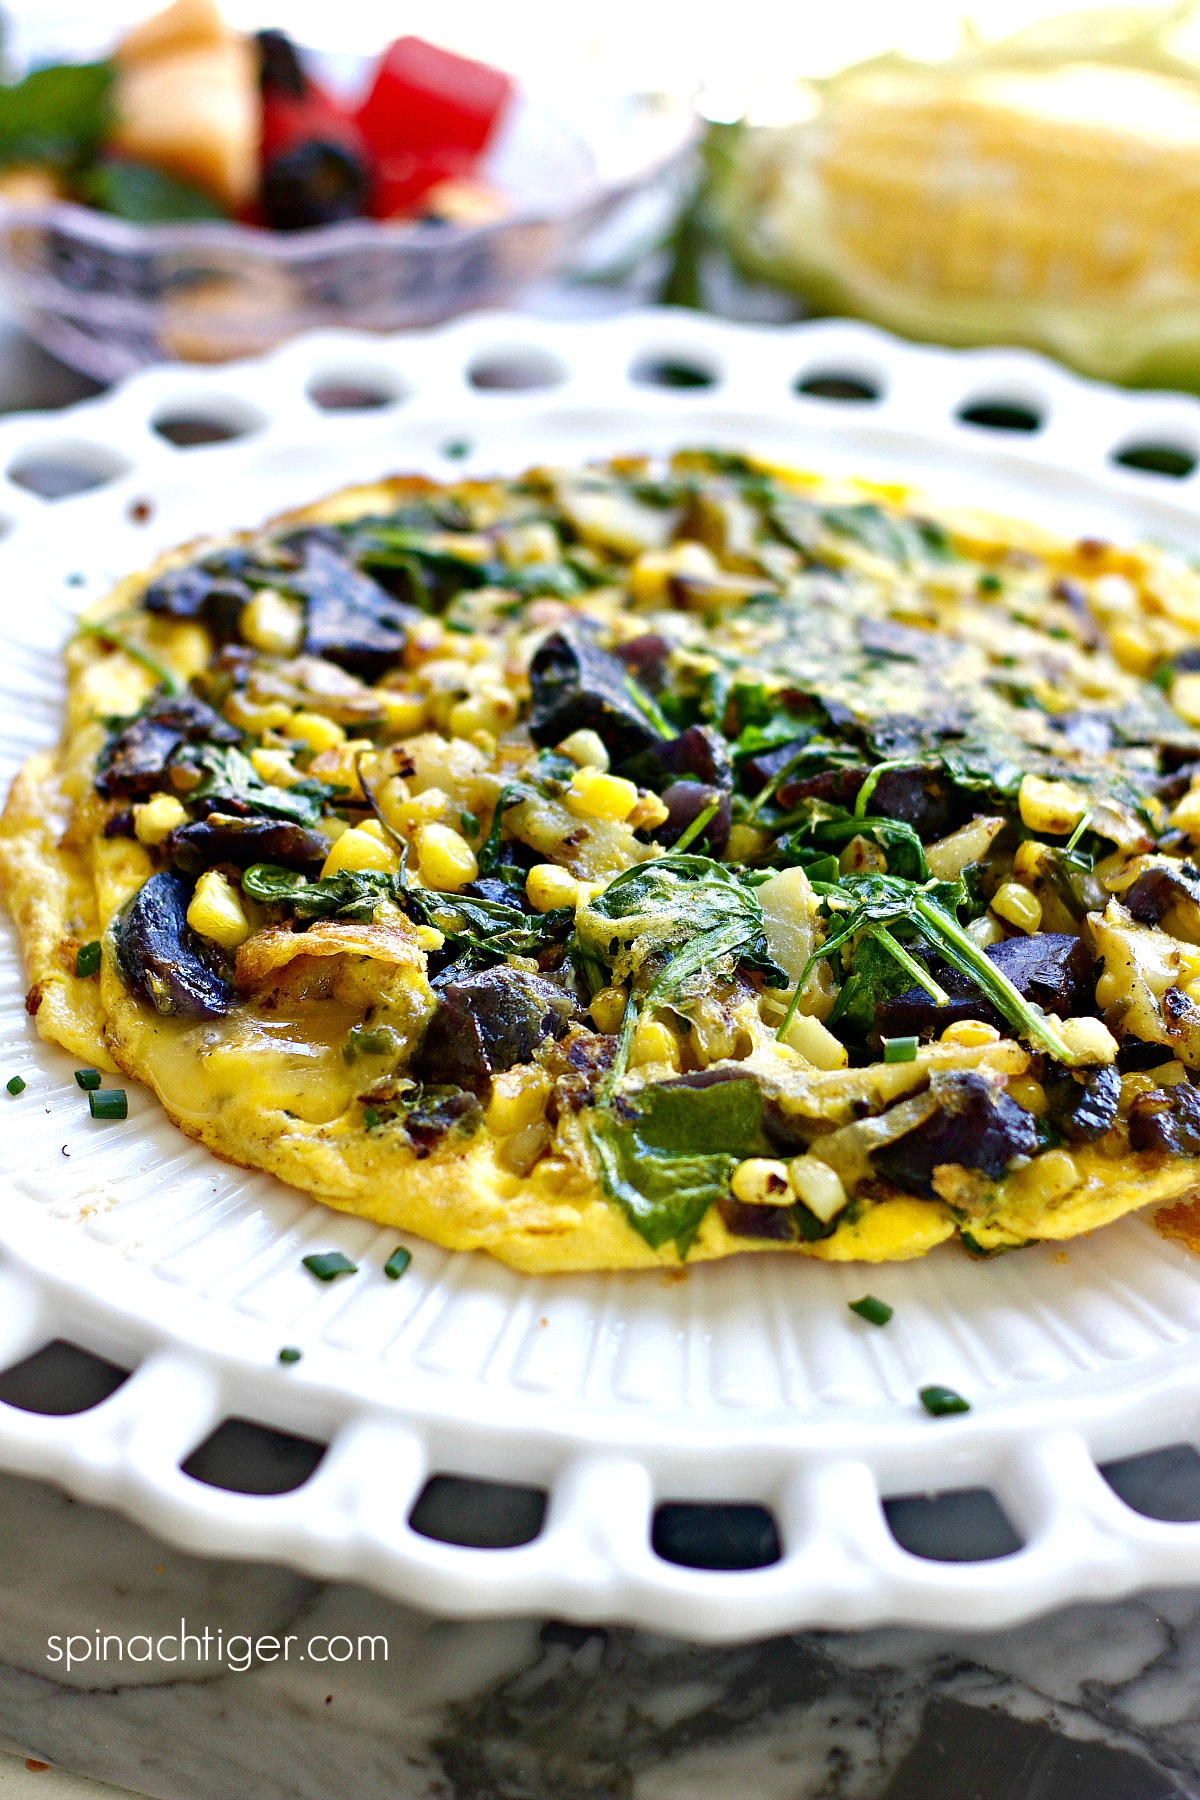 How to make Healthy Frittata stove top from Spinach Tiger